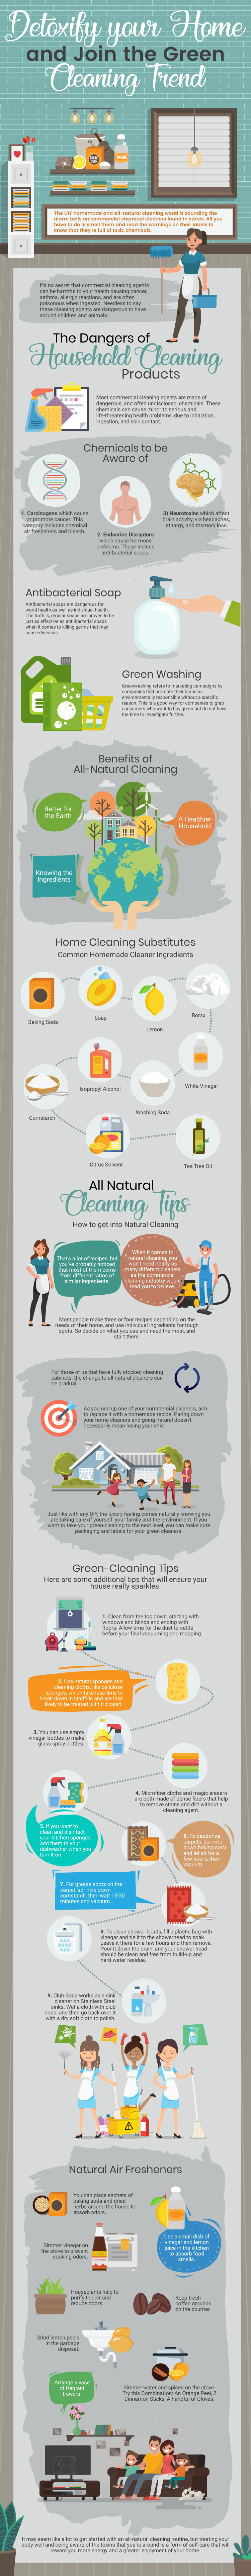 Less-toxic cleaning products - ACSWMD